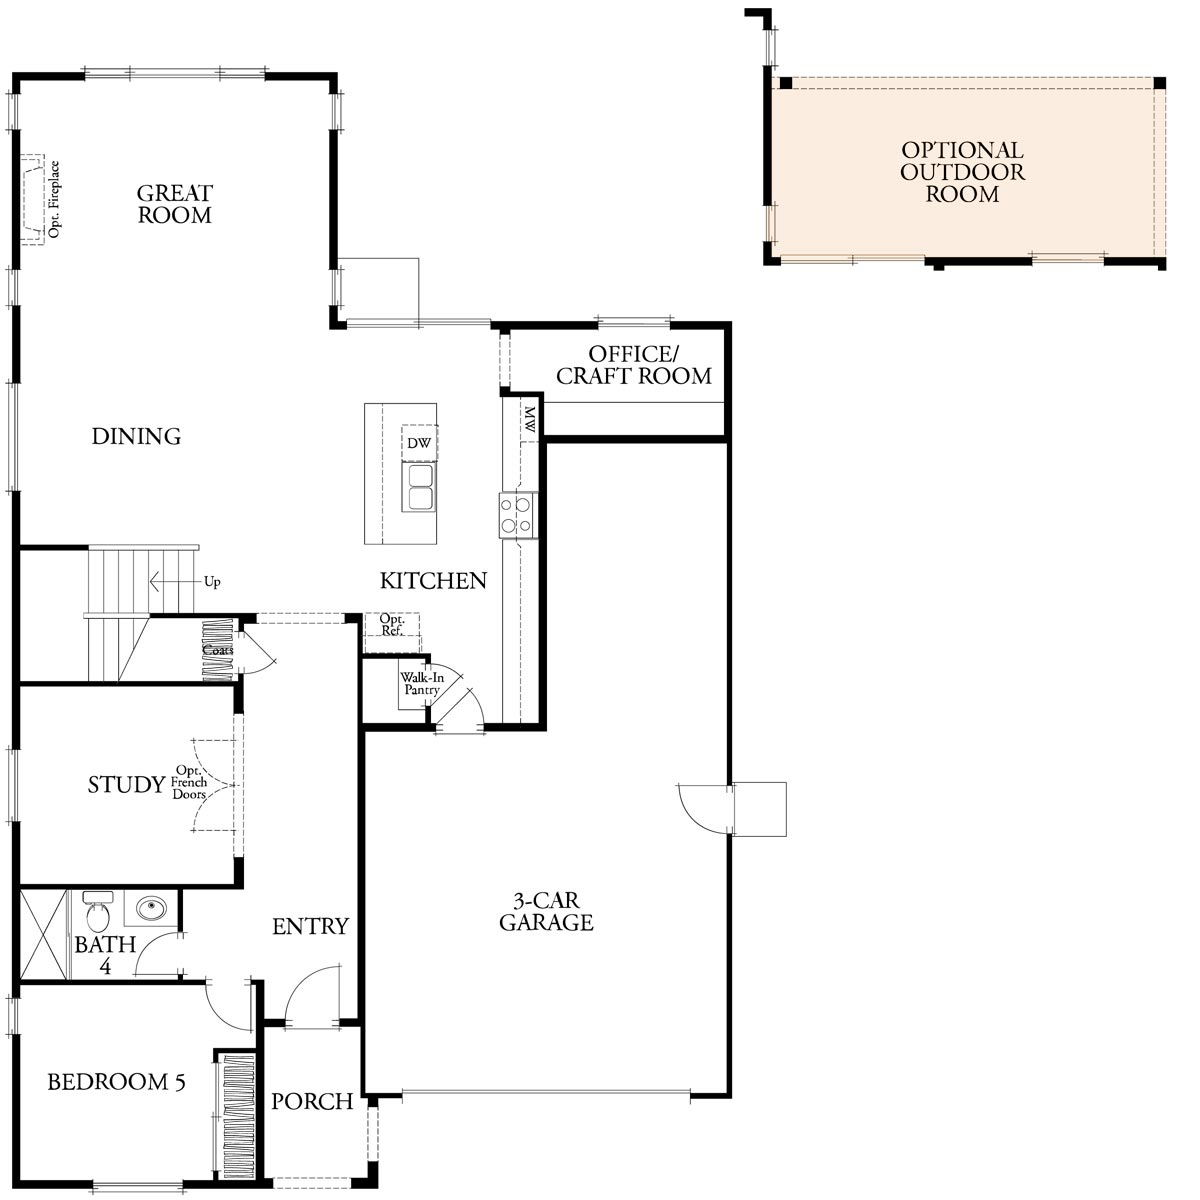 Residence 3 floor 1 plan | Citrus at Emerson Ranch in Oakley, CA | Brookfield Residential